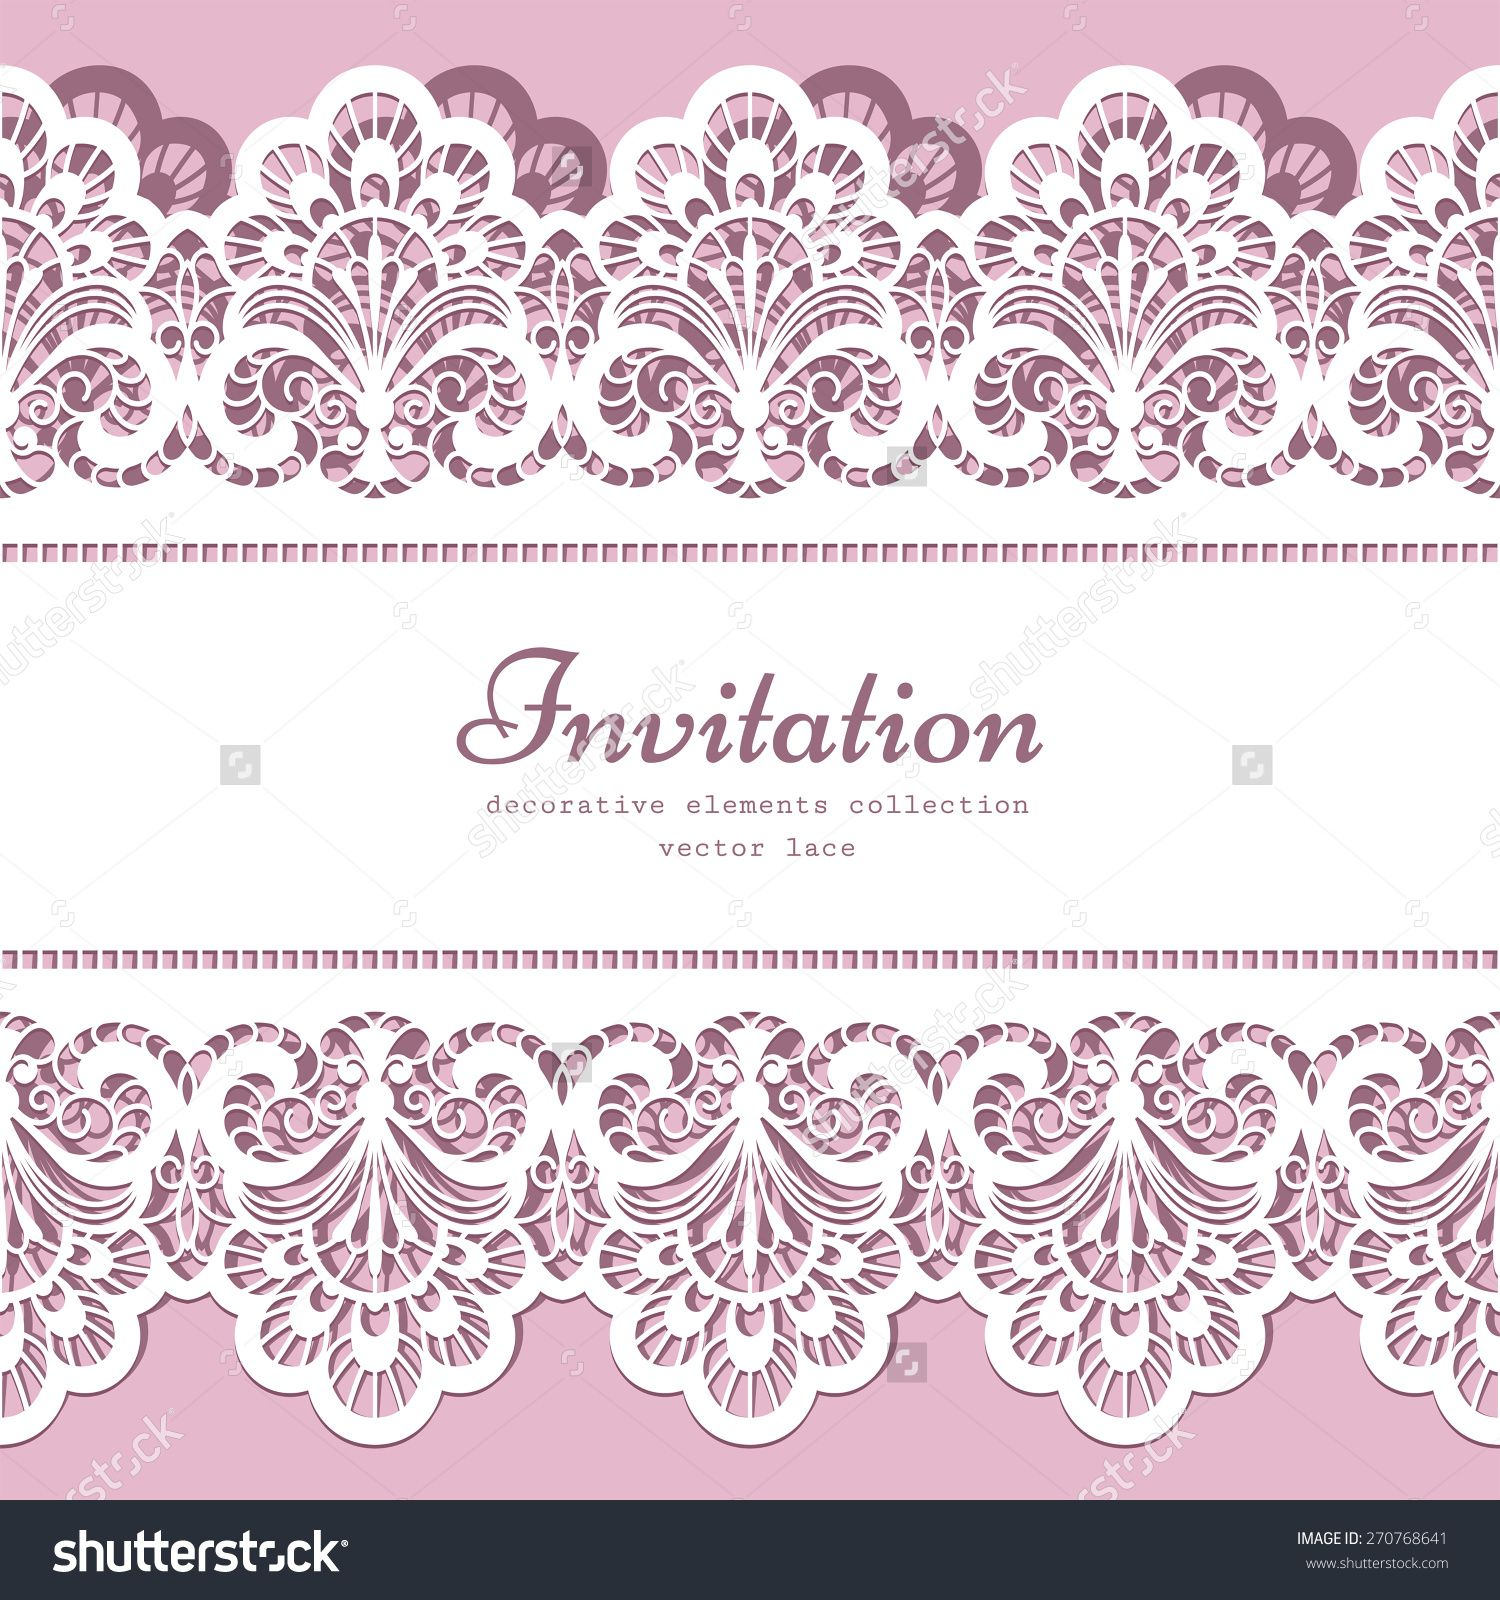 Vector Lace Background With Cutout Lacy Border Ornament